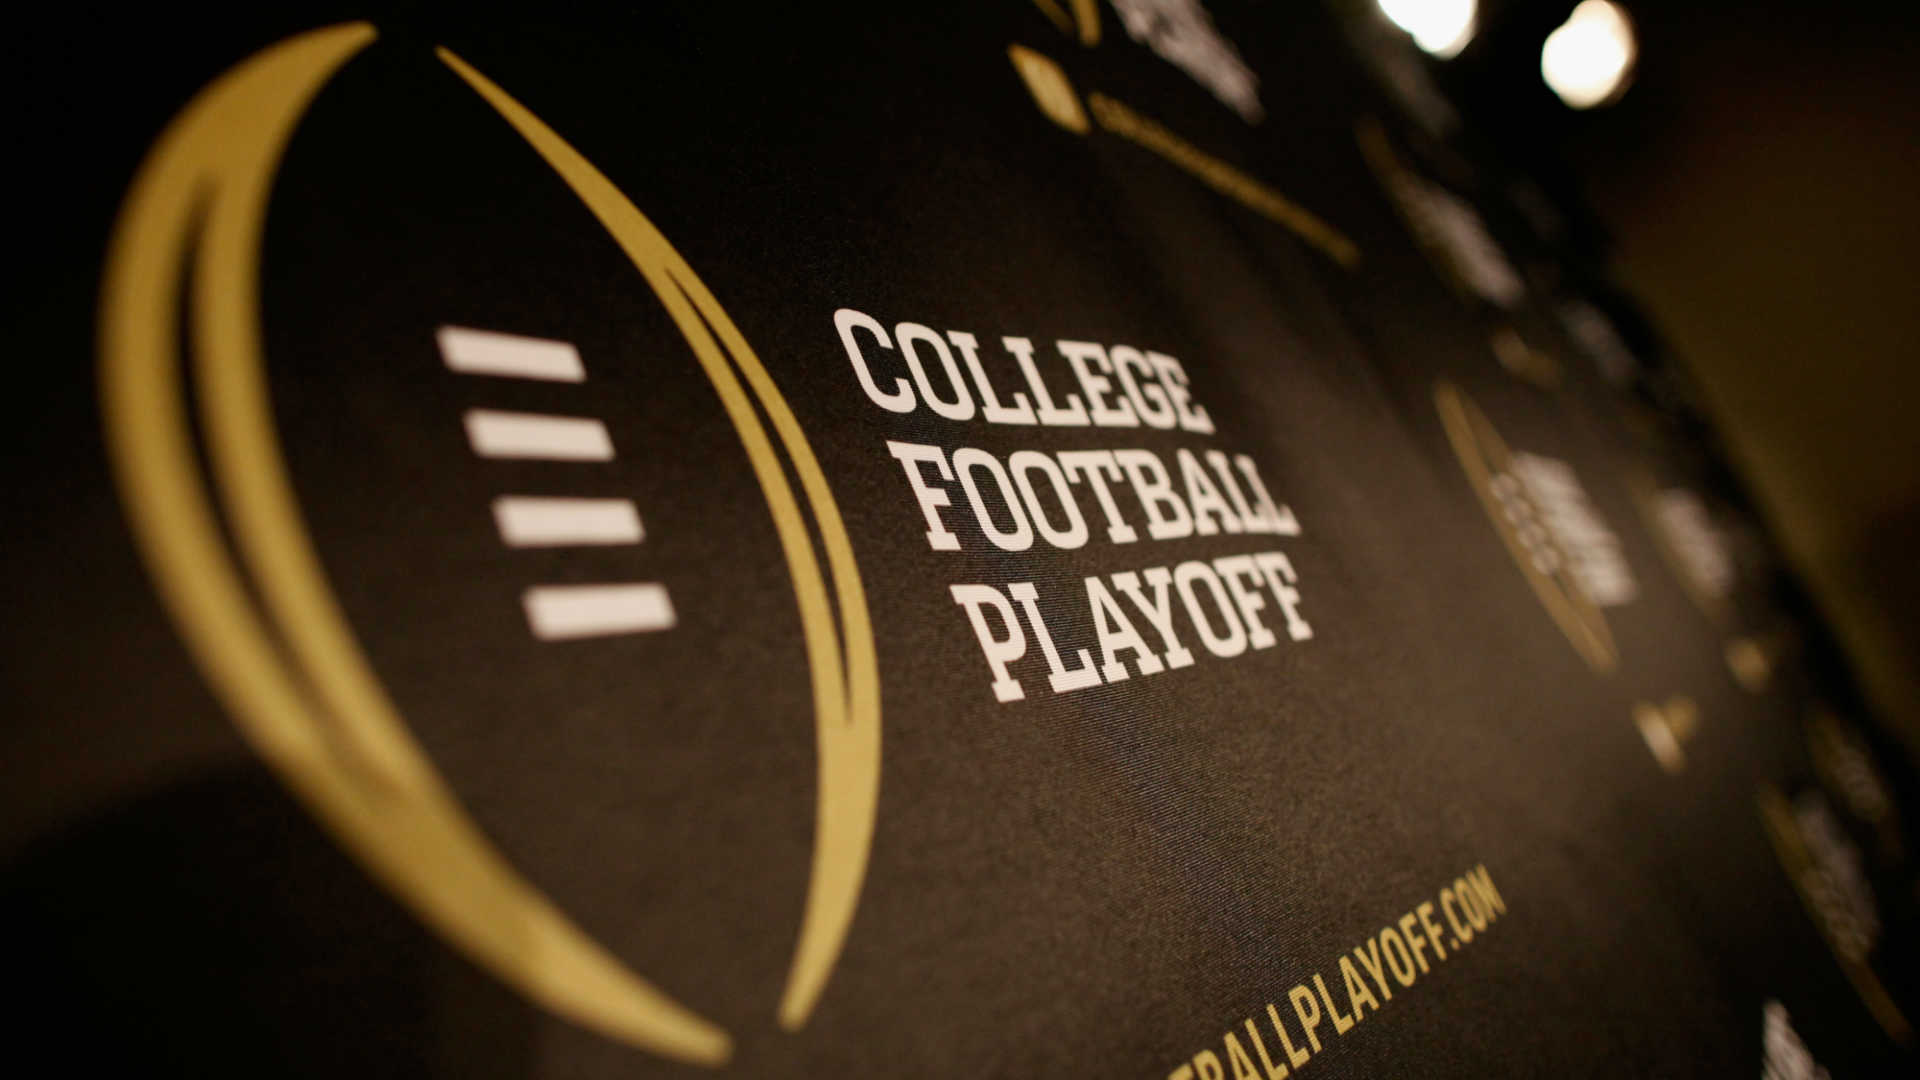 When Are The College Football Playoff Rankings Released